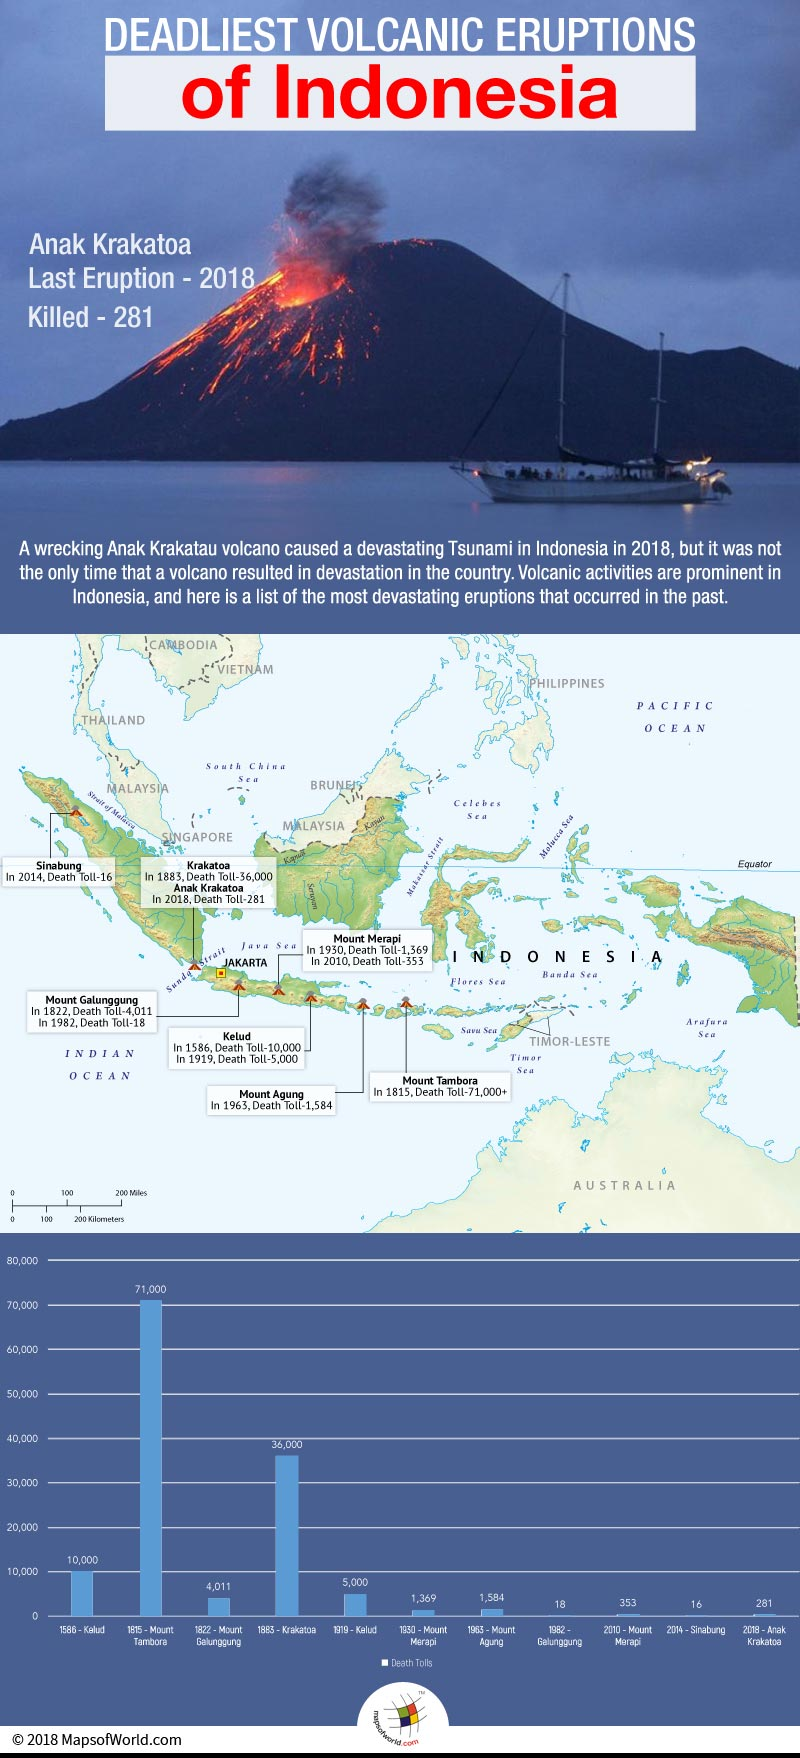 Infographic elaborating volcanic eruptions in Indonesia